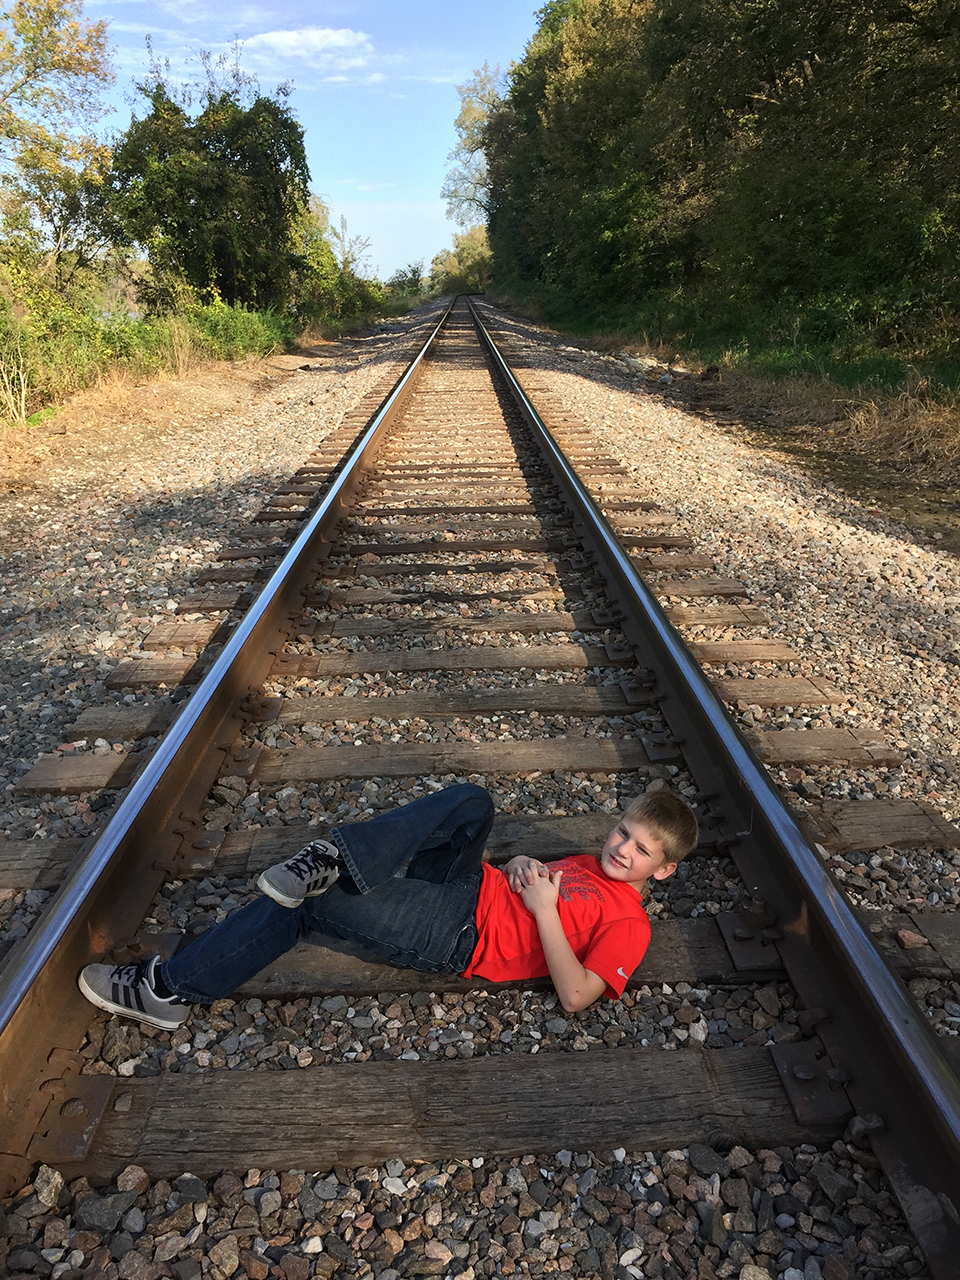 Stay 'on track'...but get out of the way if you hear a train coming!